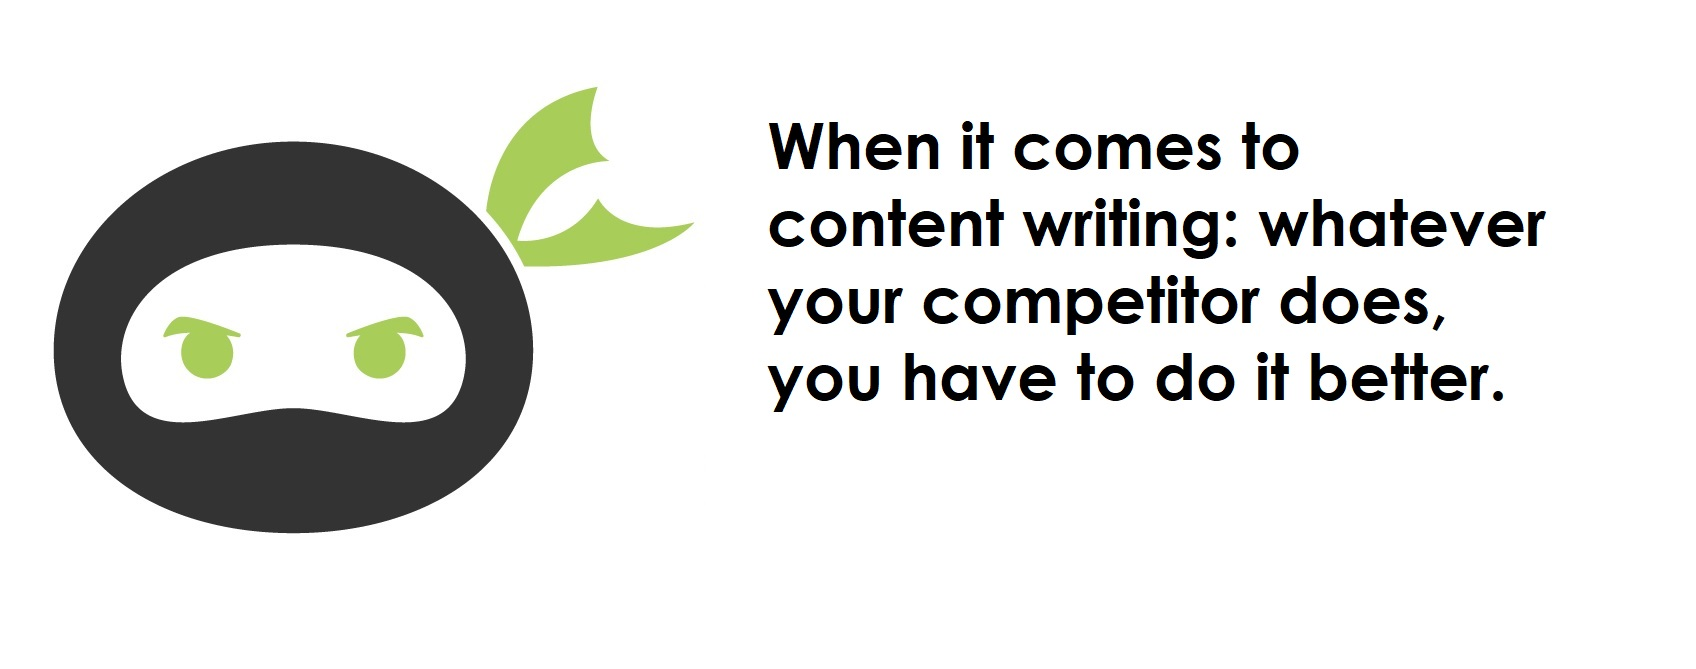 whatever your competitor does in content writing do it better